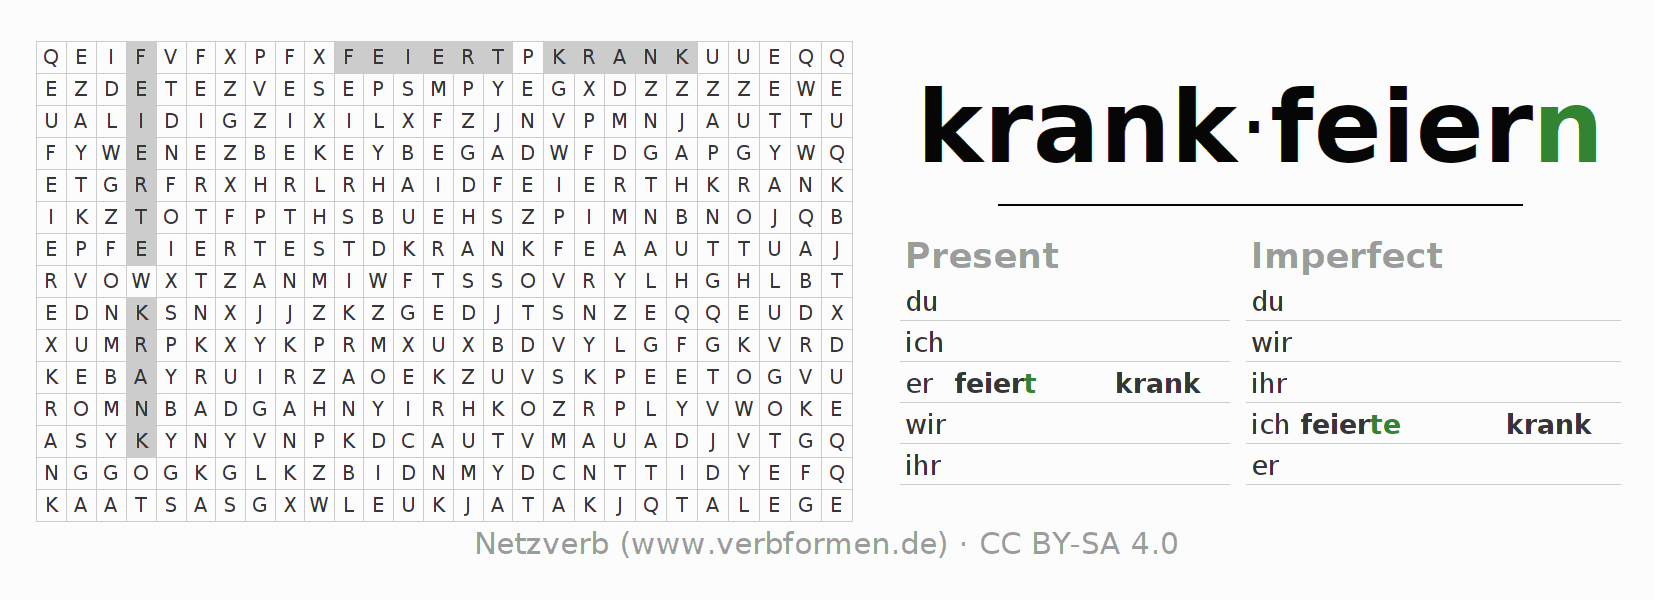 Word search puzzle for the conjugation of the verb krankfeiern